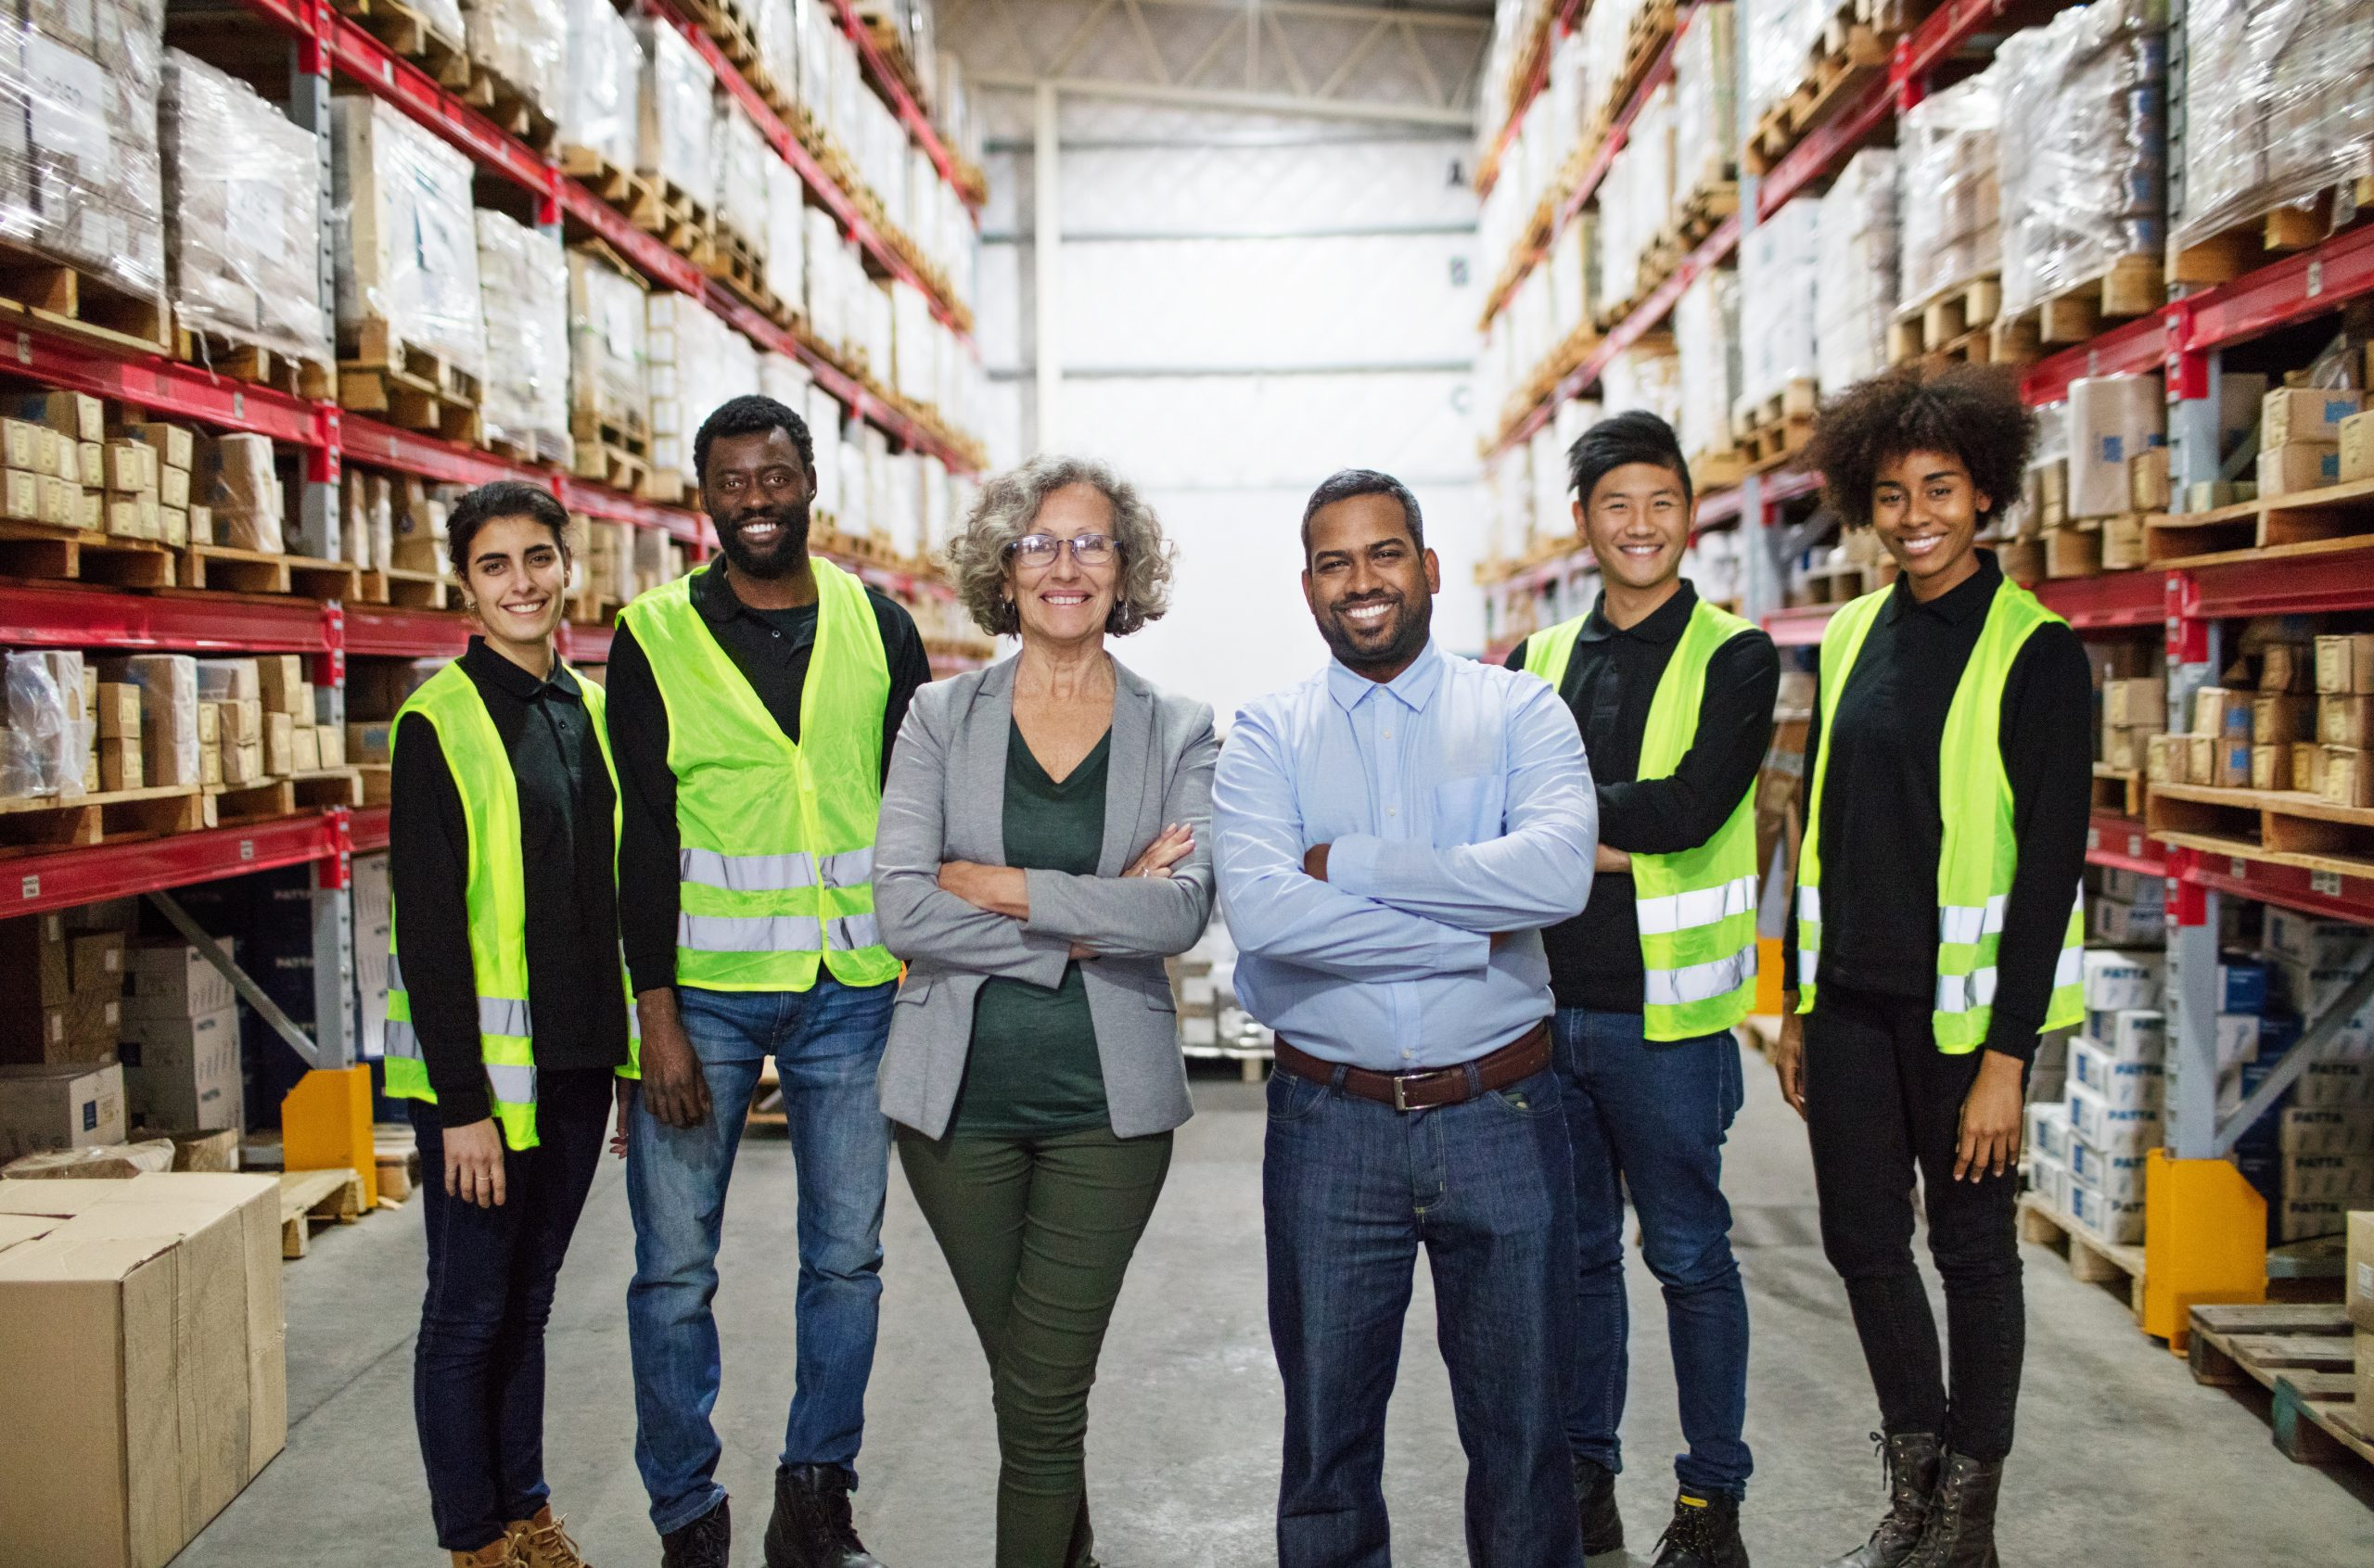 Benefits of Working with Warehouse Temp Agencies